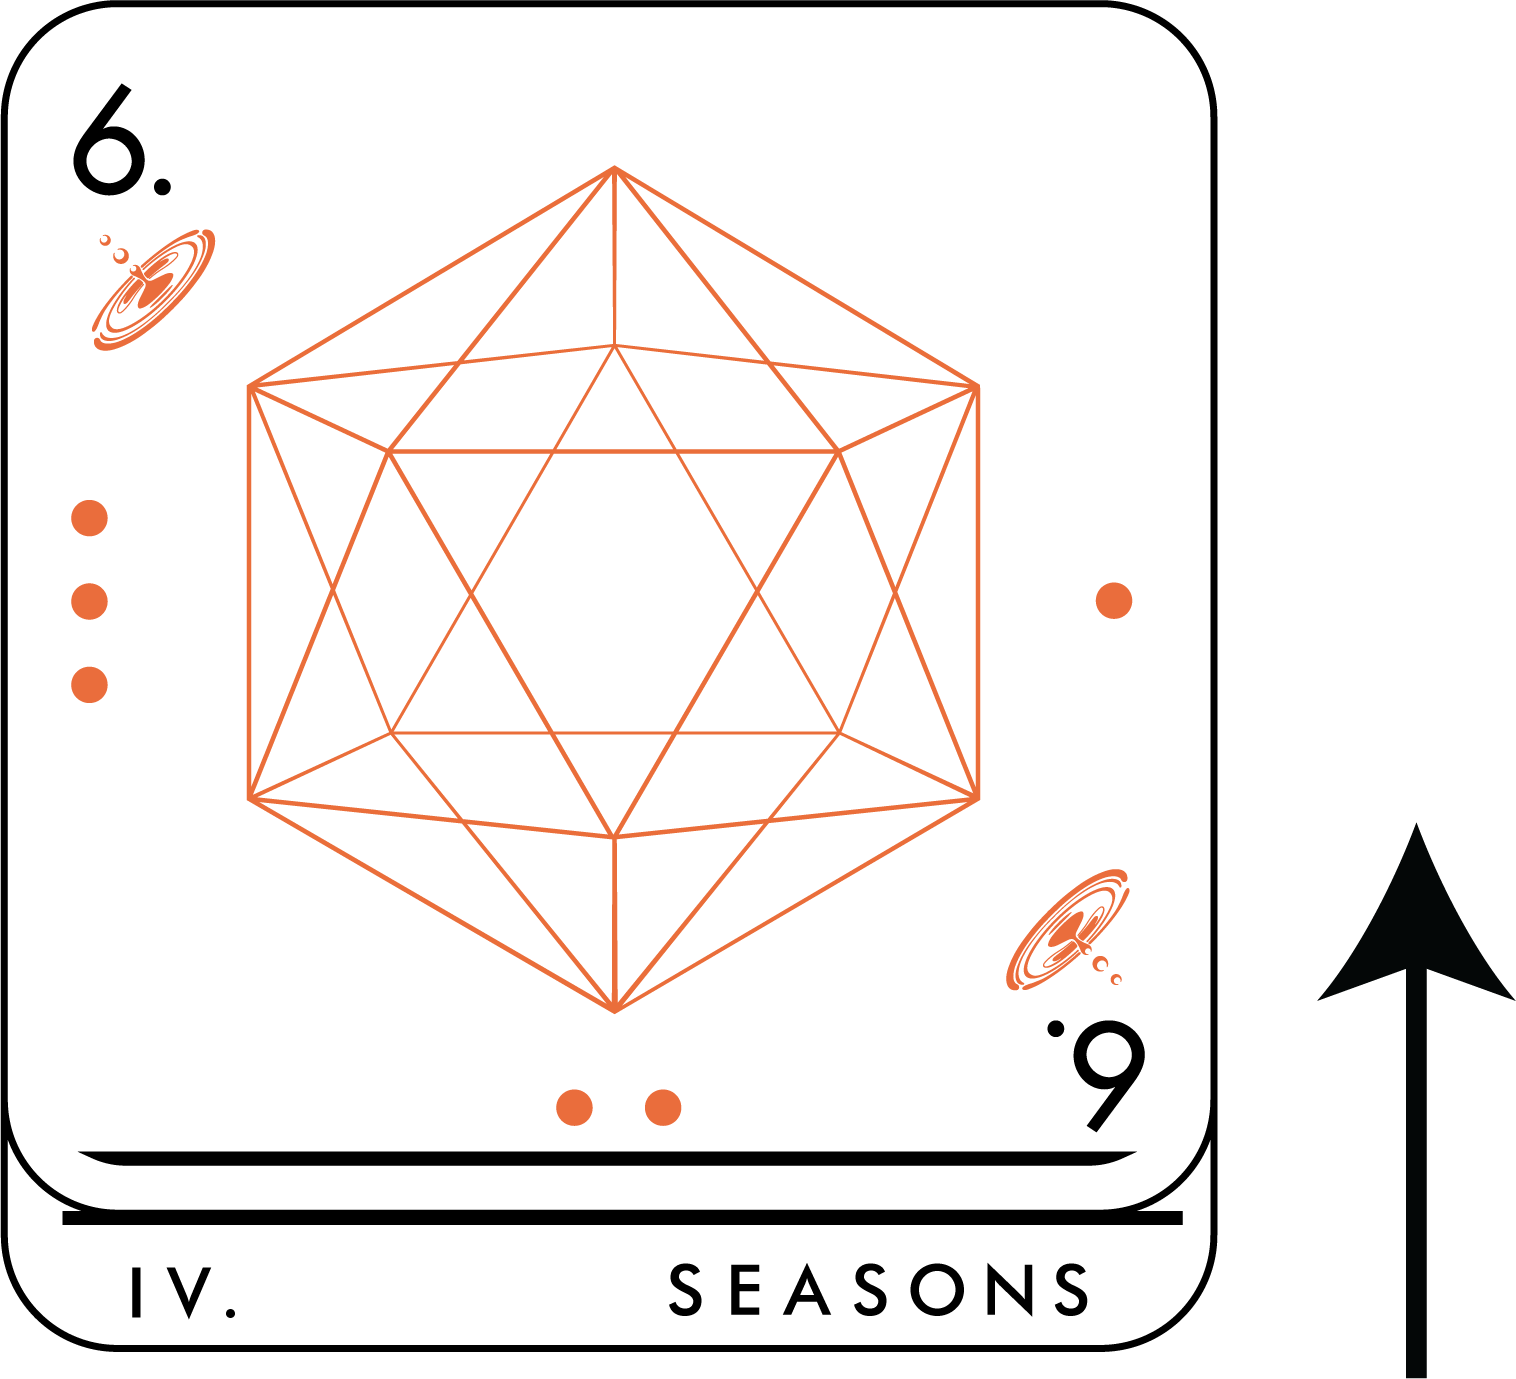 To attach: Slide the IV. Seasons card beneath the chosen card so that you can still clearly see the IV. Seasons title.